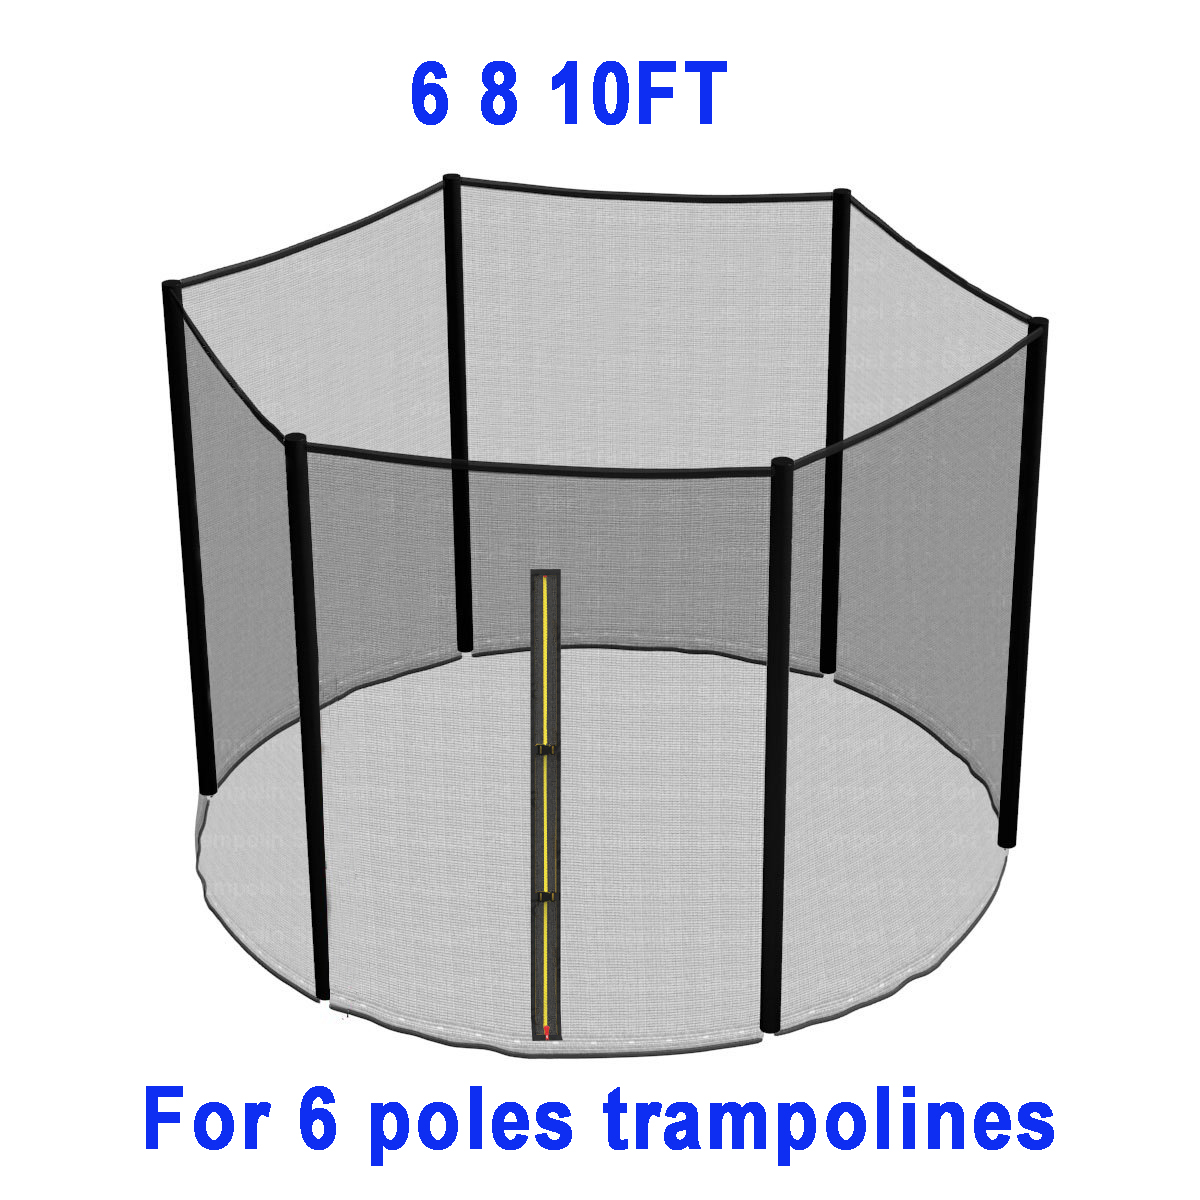 TRAMPOLINE REPLACEMENT PAD PADDING SAFETY NET ENCLOSURE 6